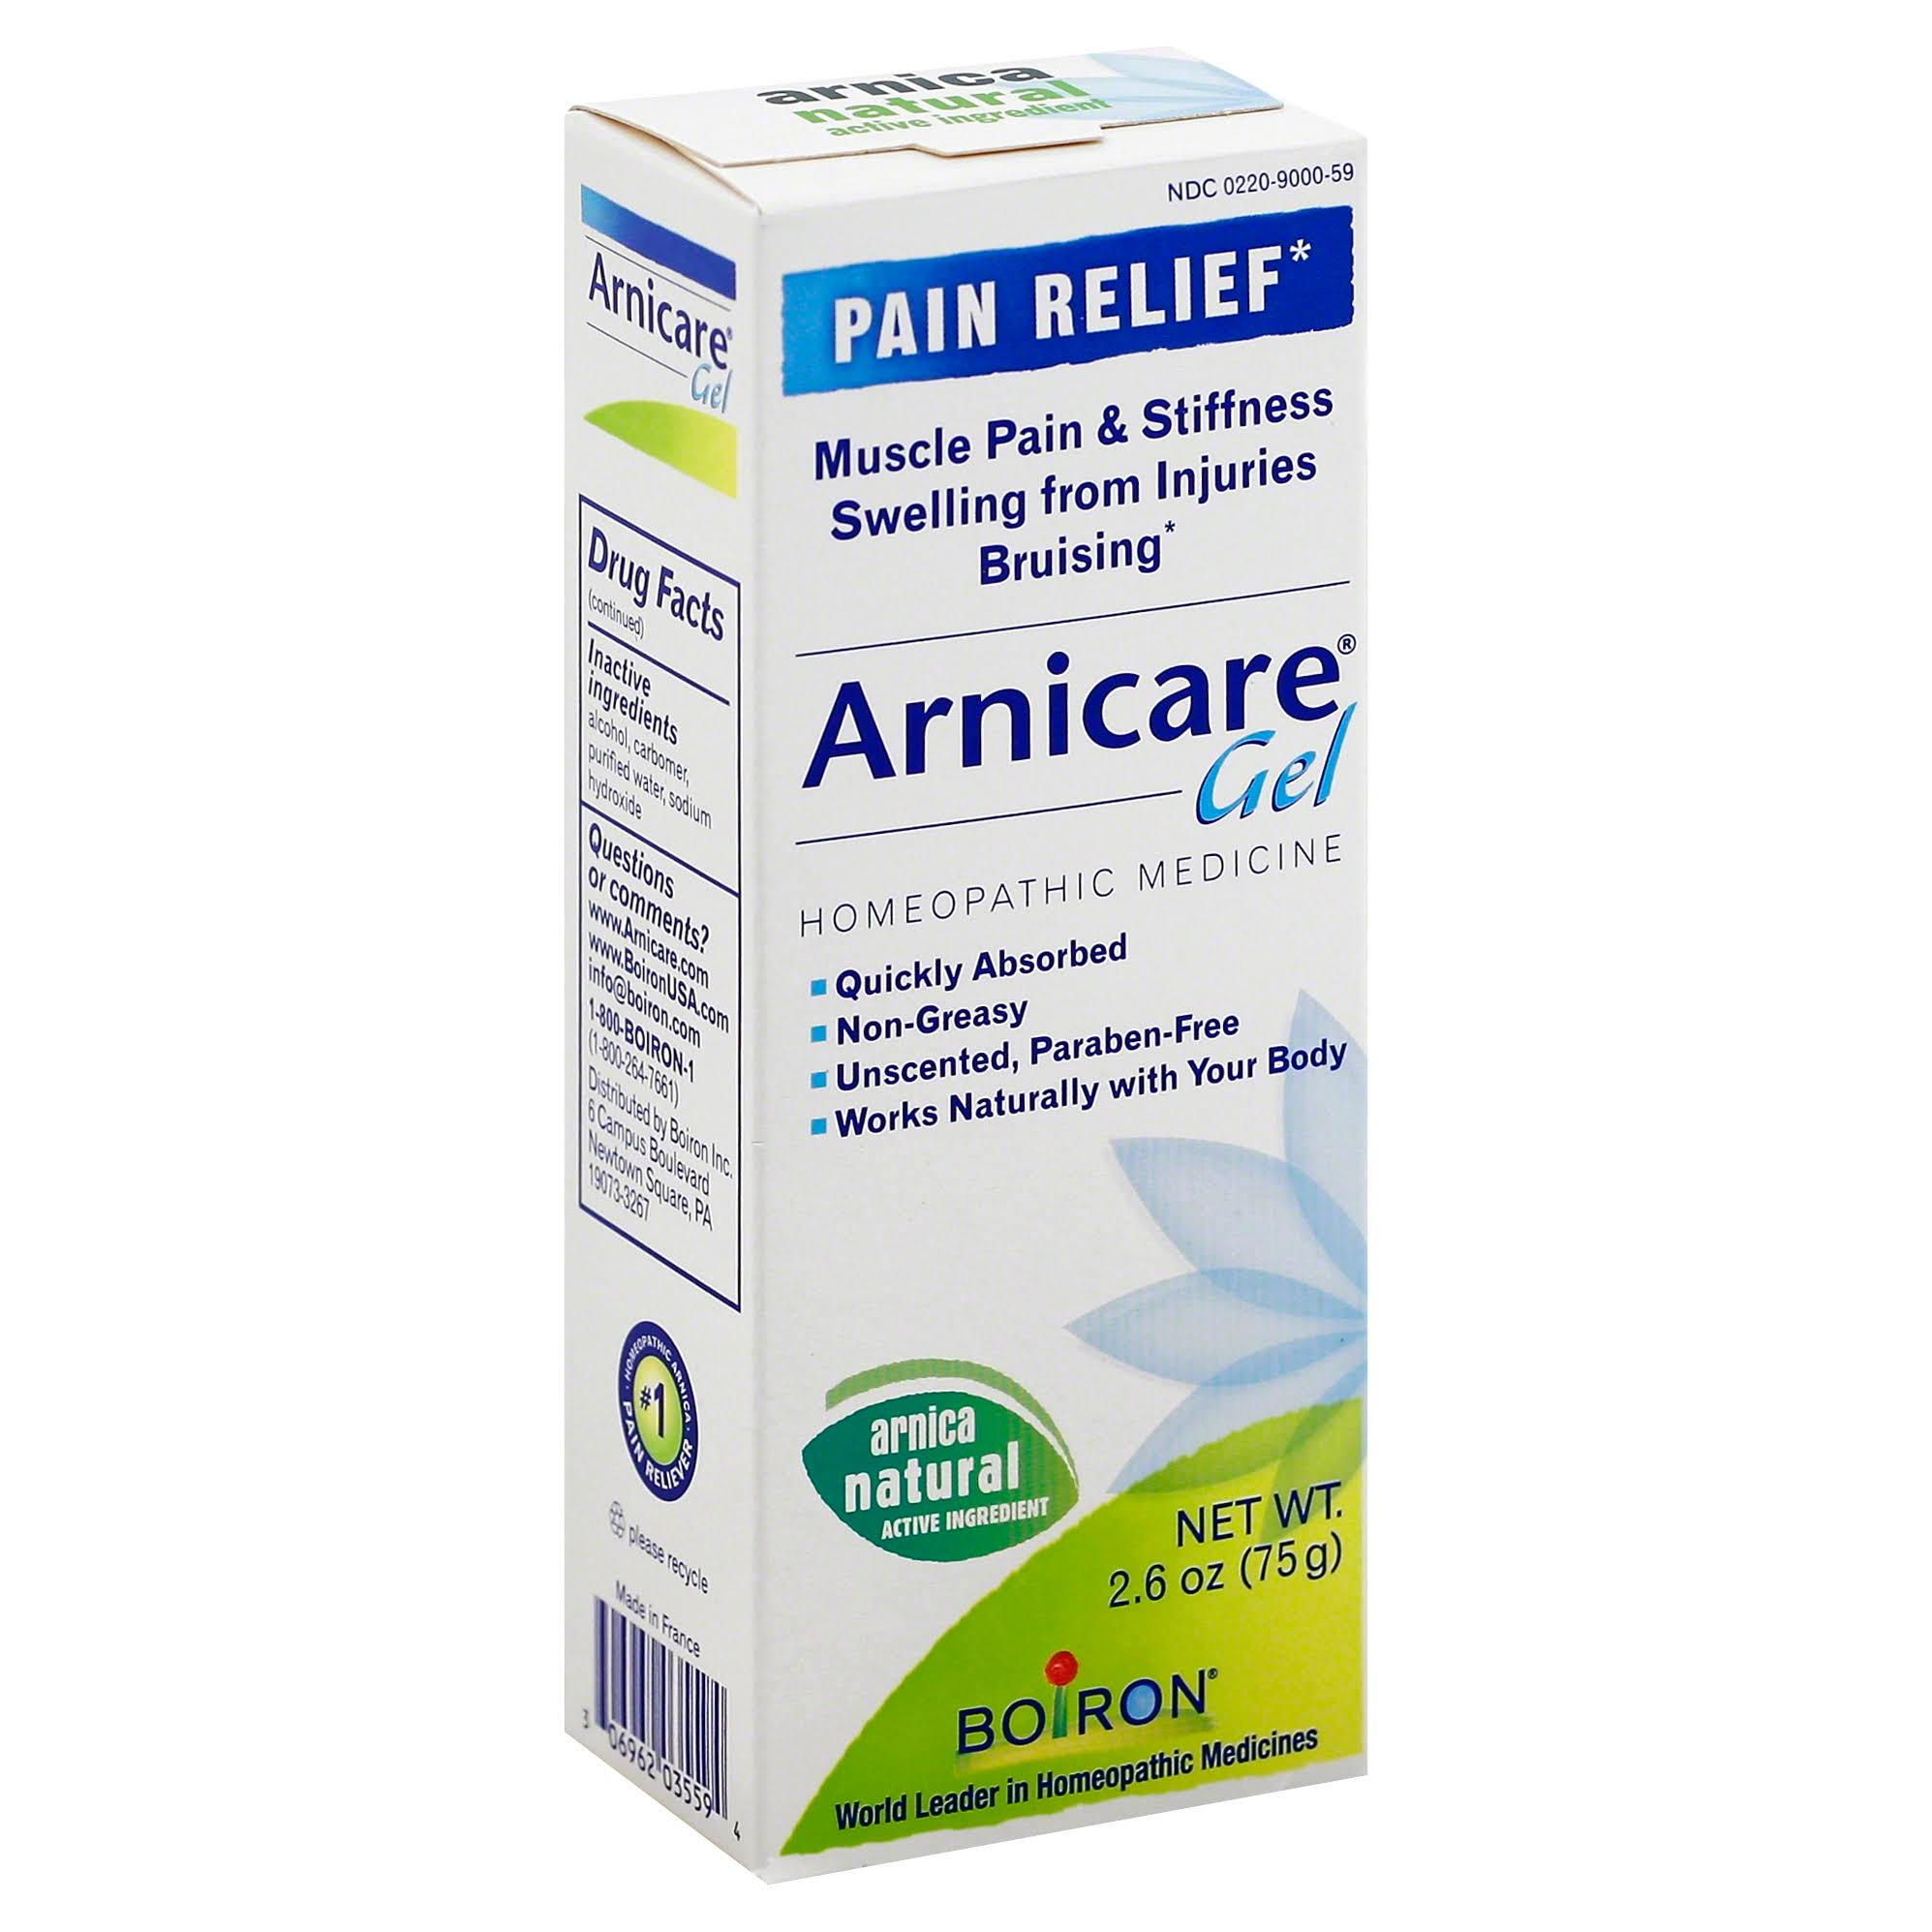 Boiron Arnicare, Pain Relief, Gel - 2.6 oz